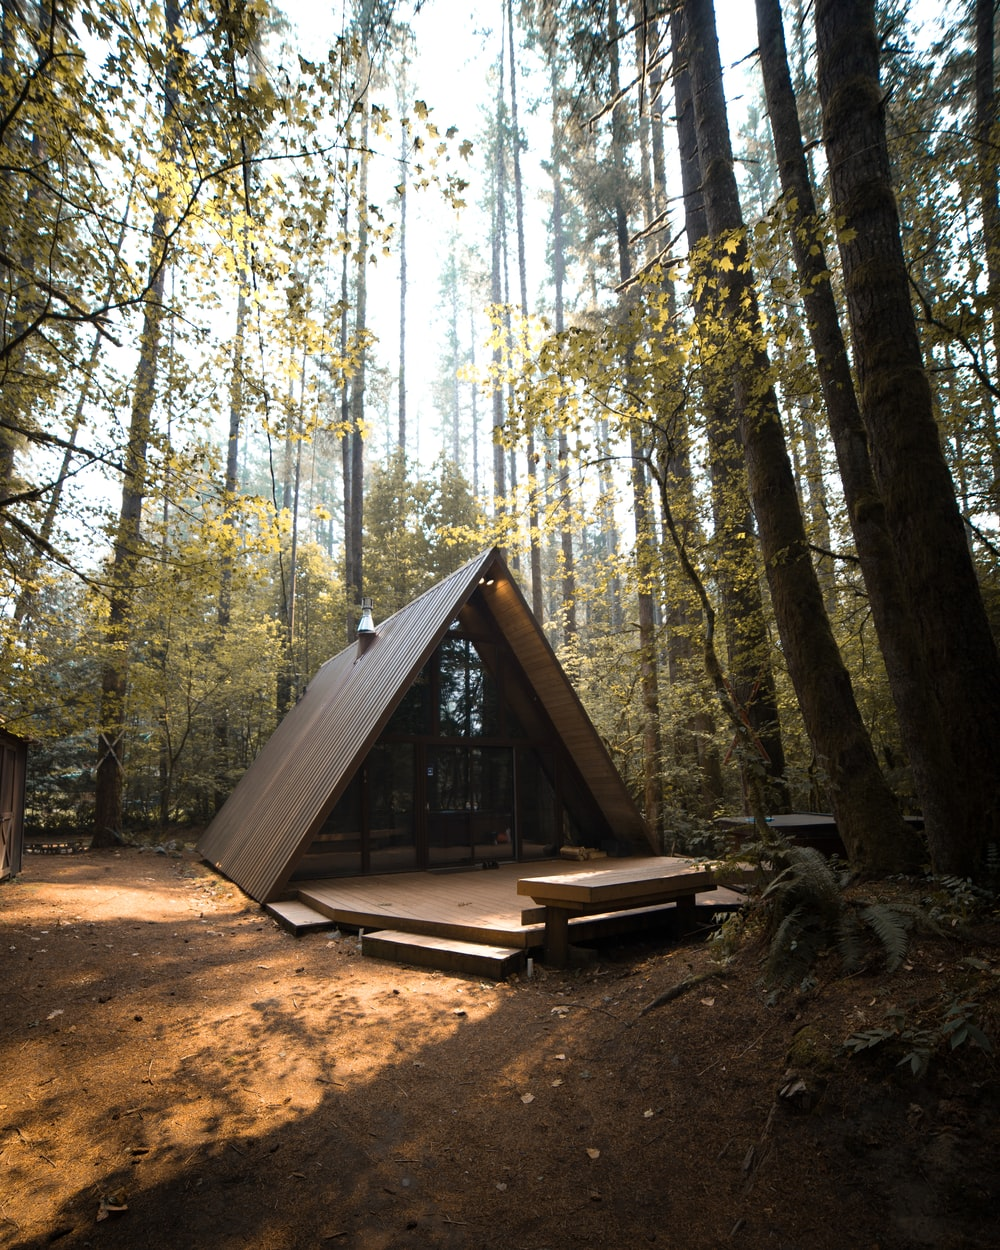 brown wooden cabin in forest